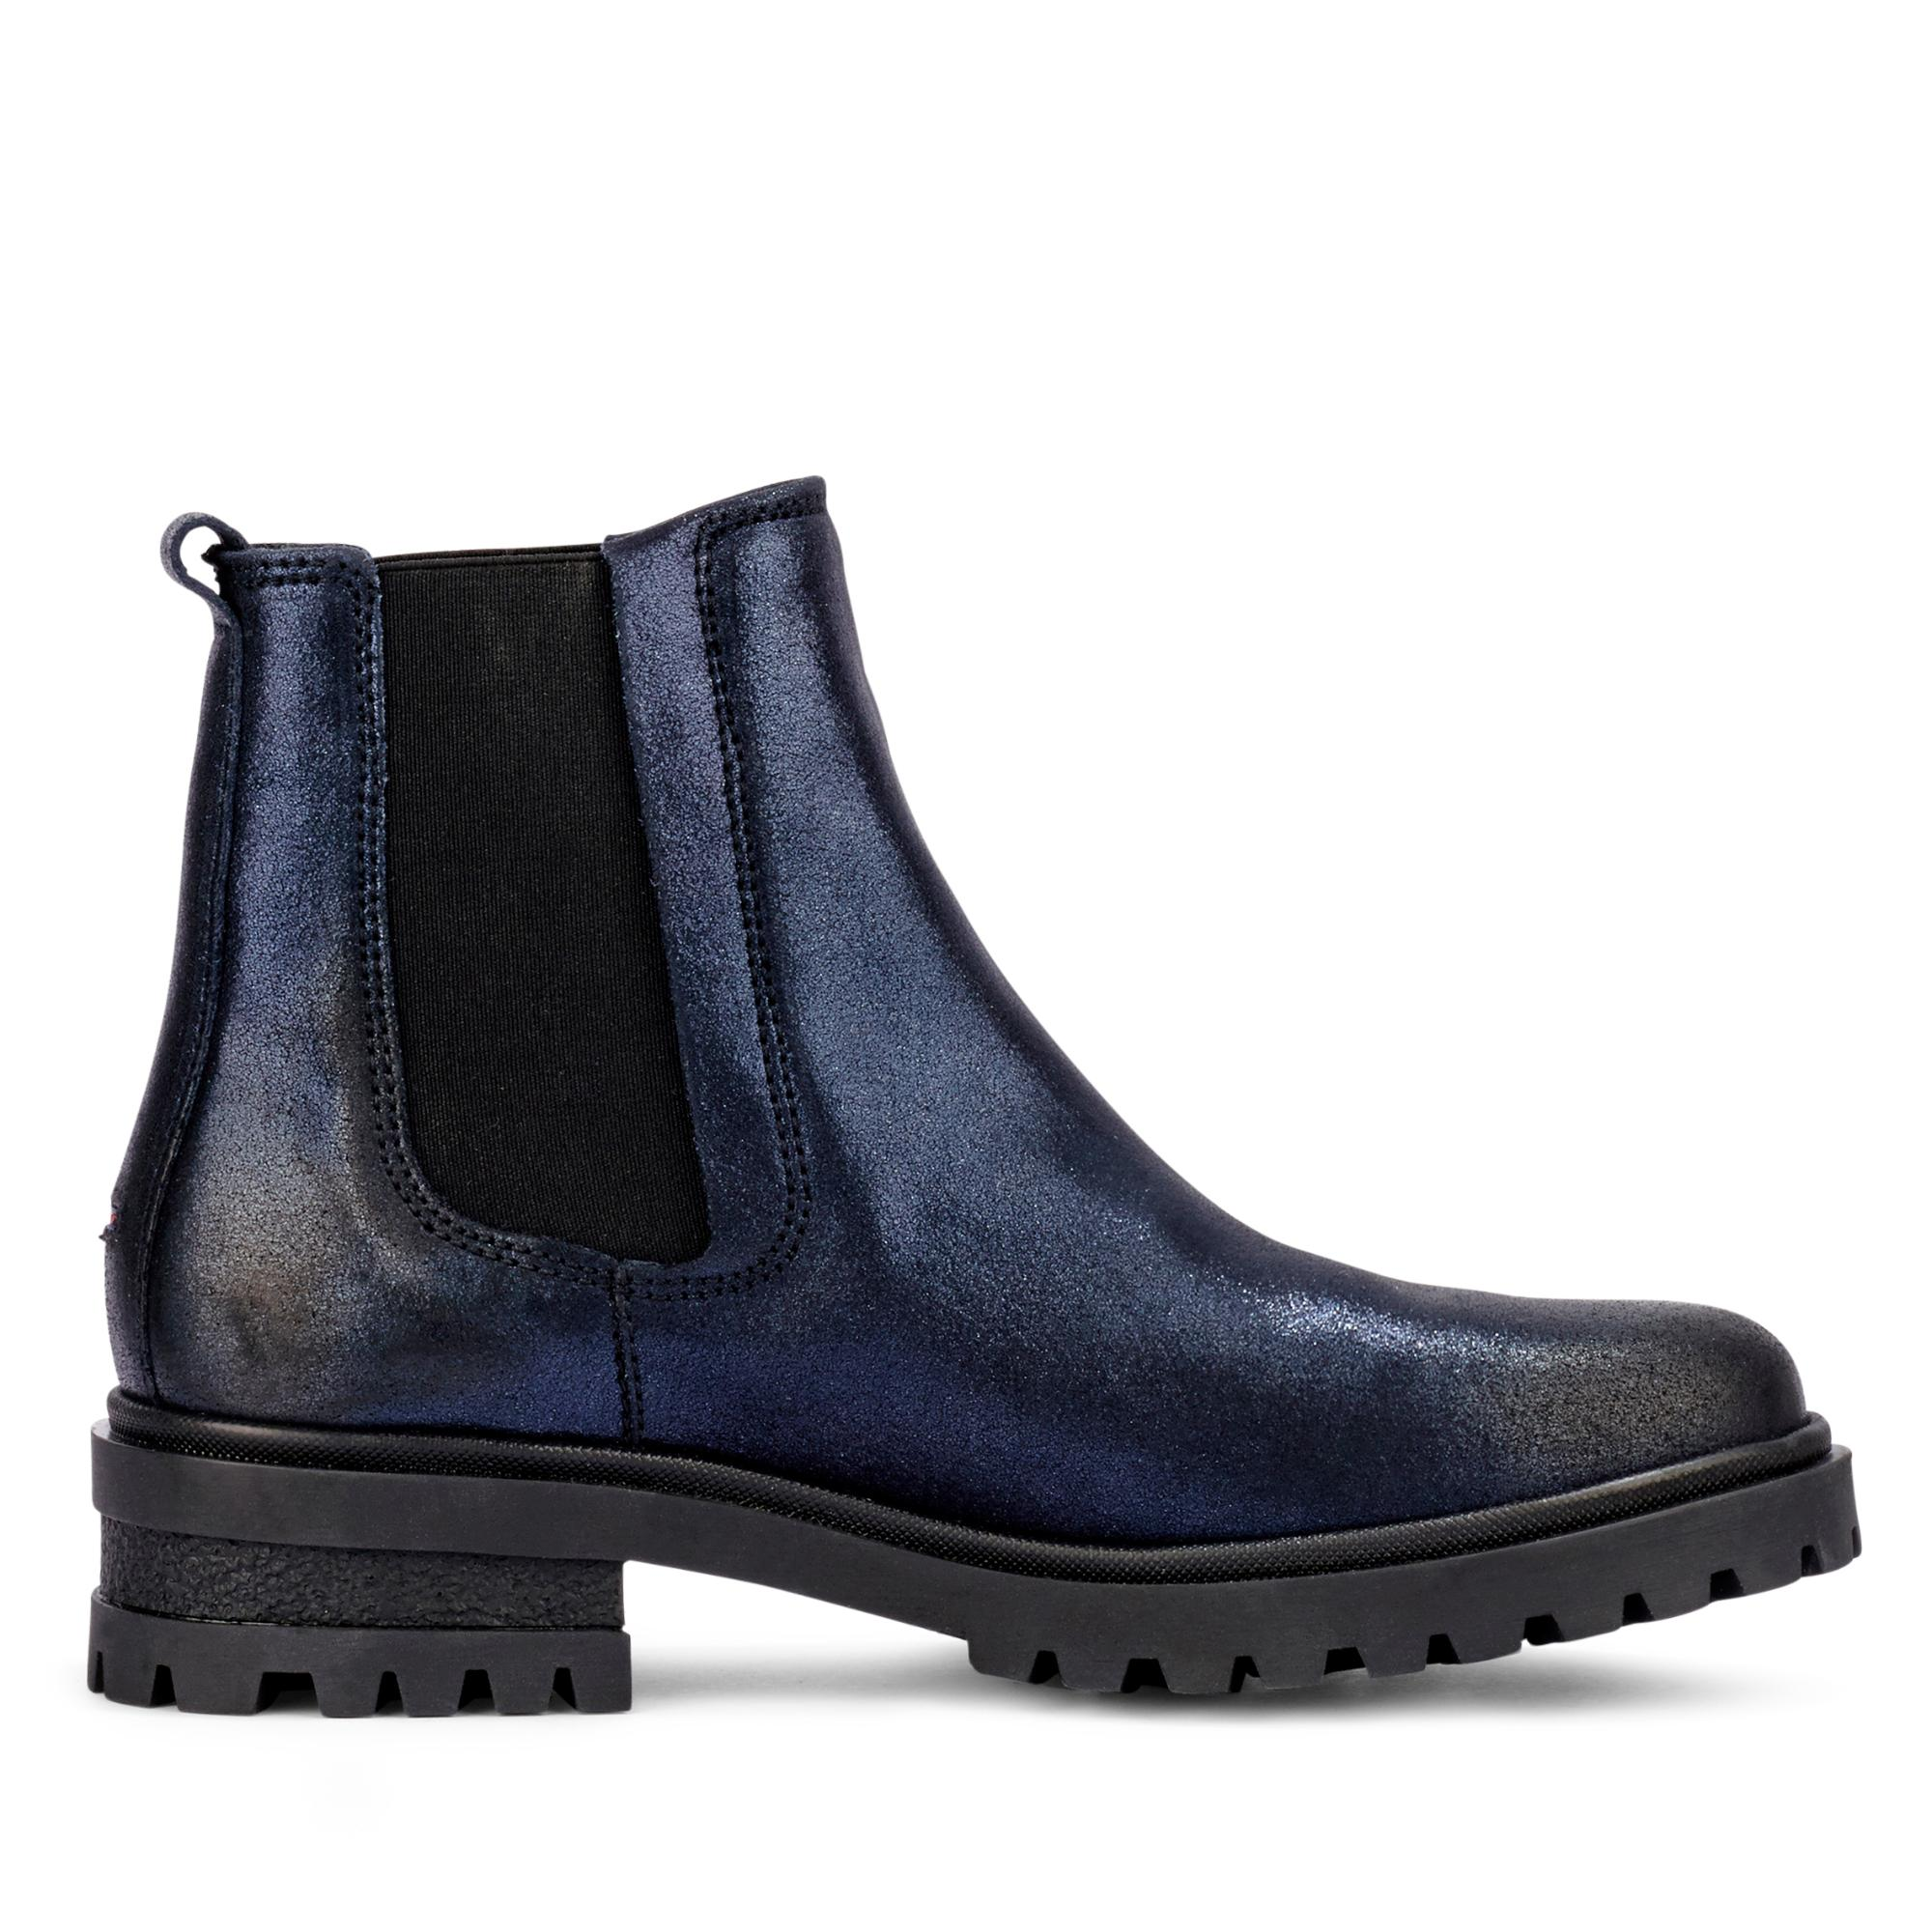 7a84a73ada7be7 Tommy Jeans Damen sportive Chelsea Boots Stiefelette Nubukleder ...